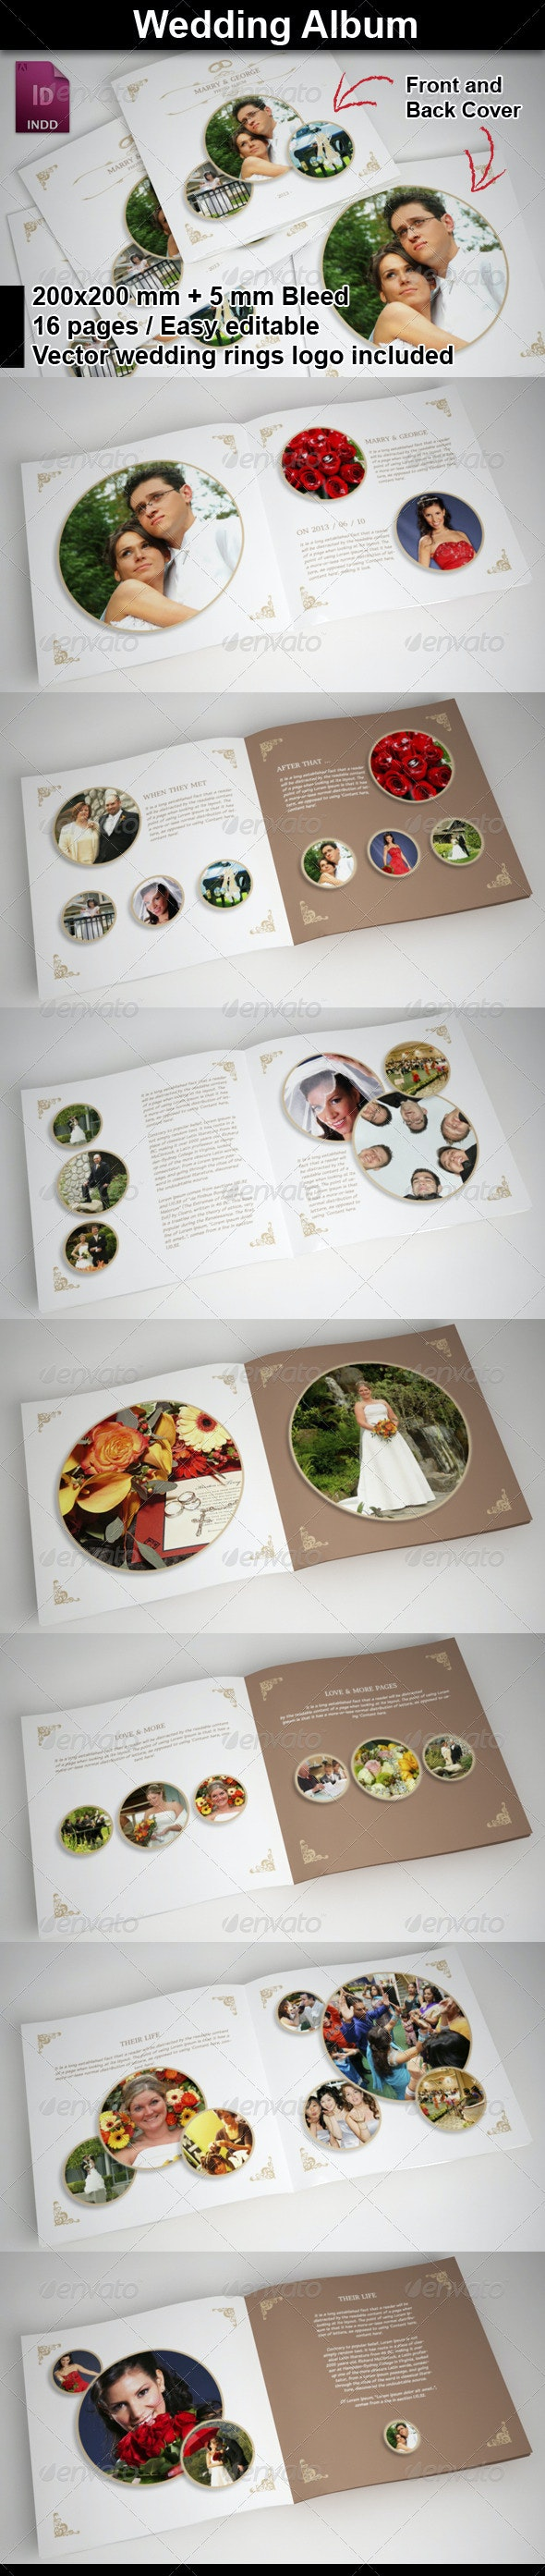 Wedding Album with Rounded Frames - Photo Albums Print Templates